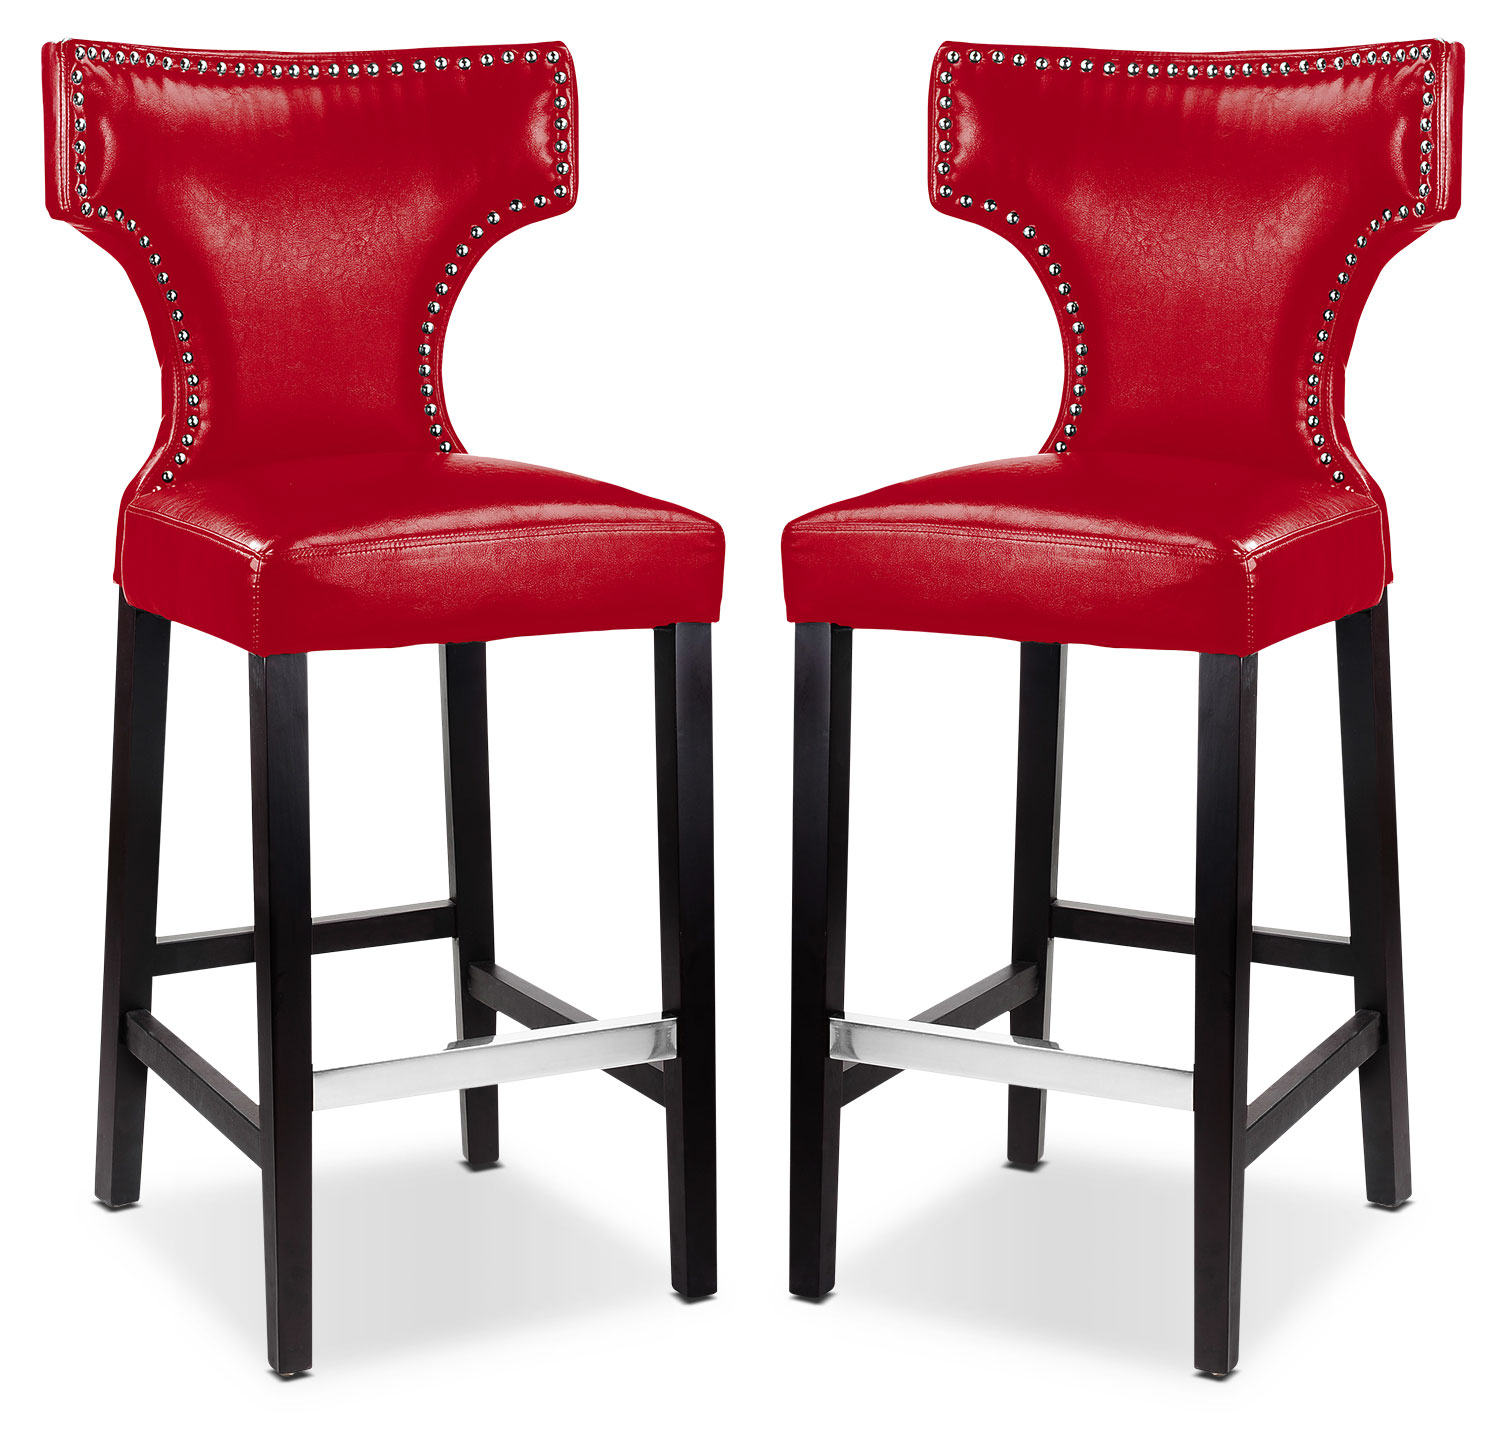 Dining Room Furniture - Kings Bar Stool with Metal Studs, Set of 2 – Red